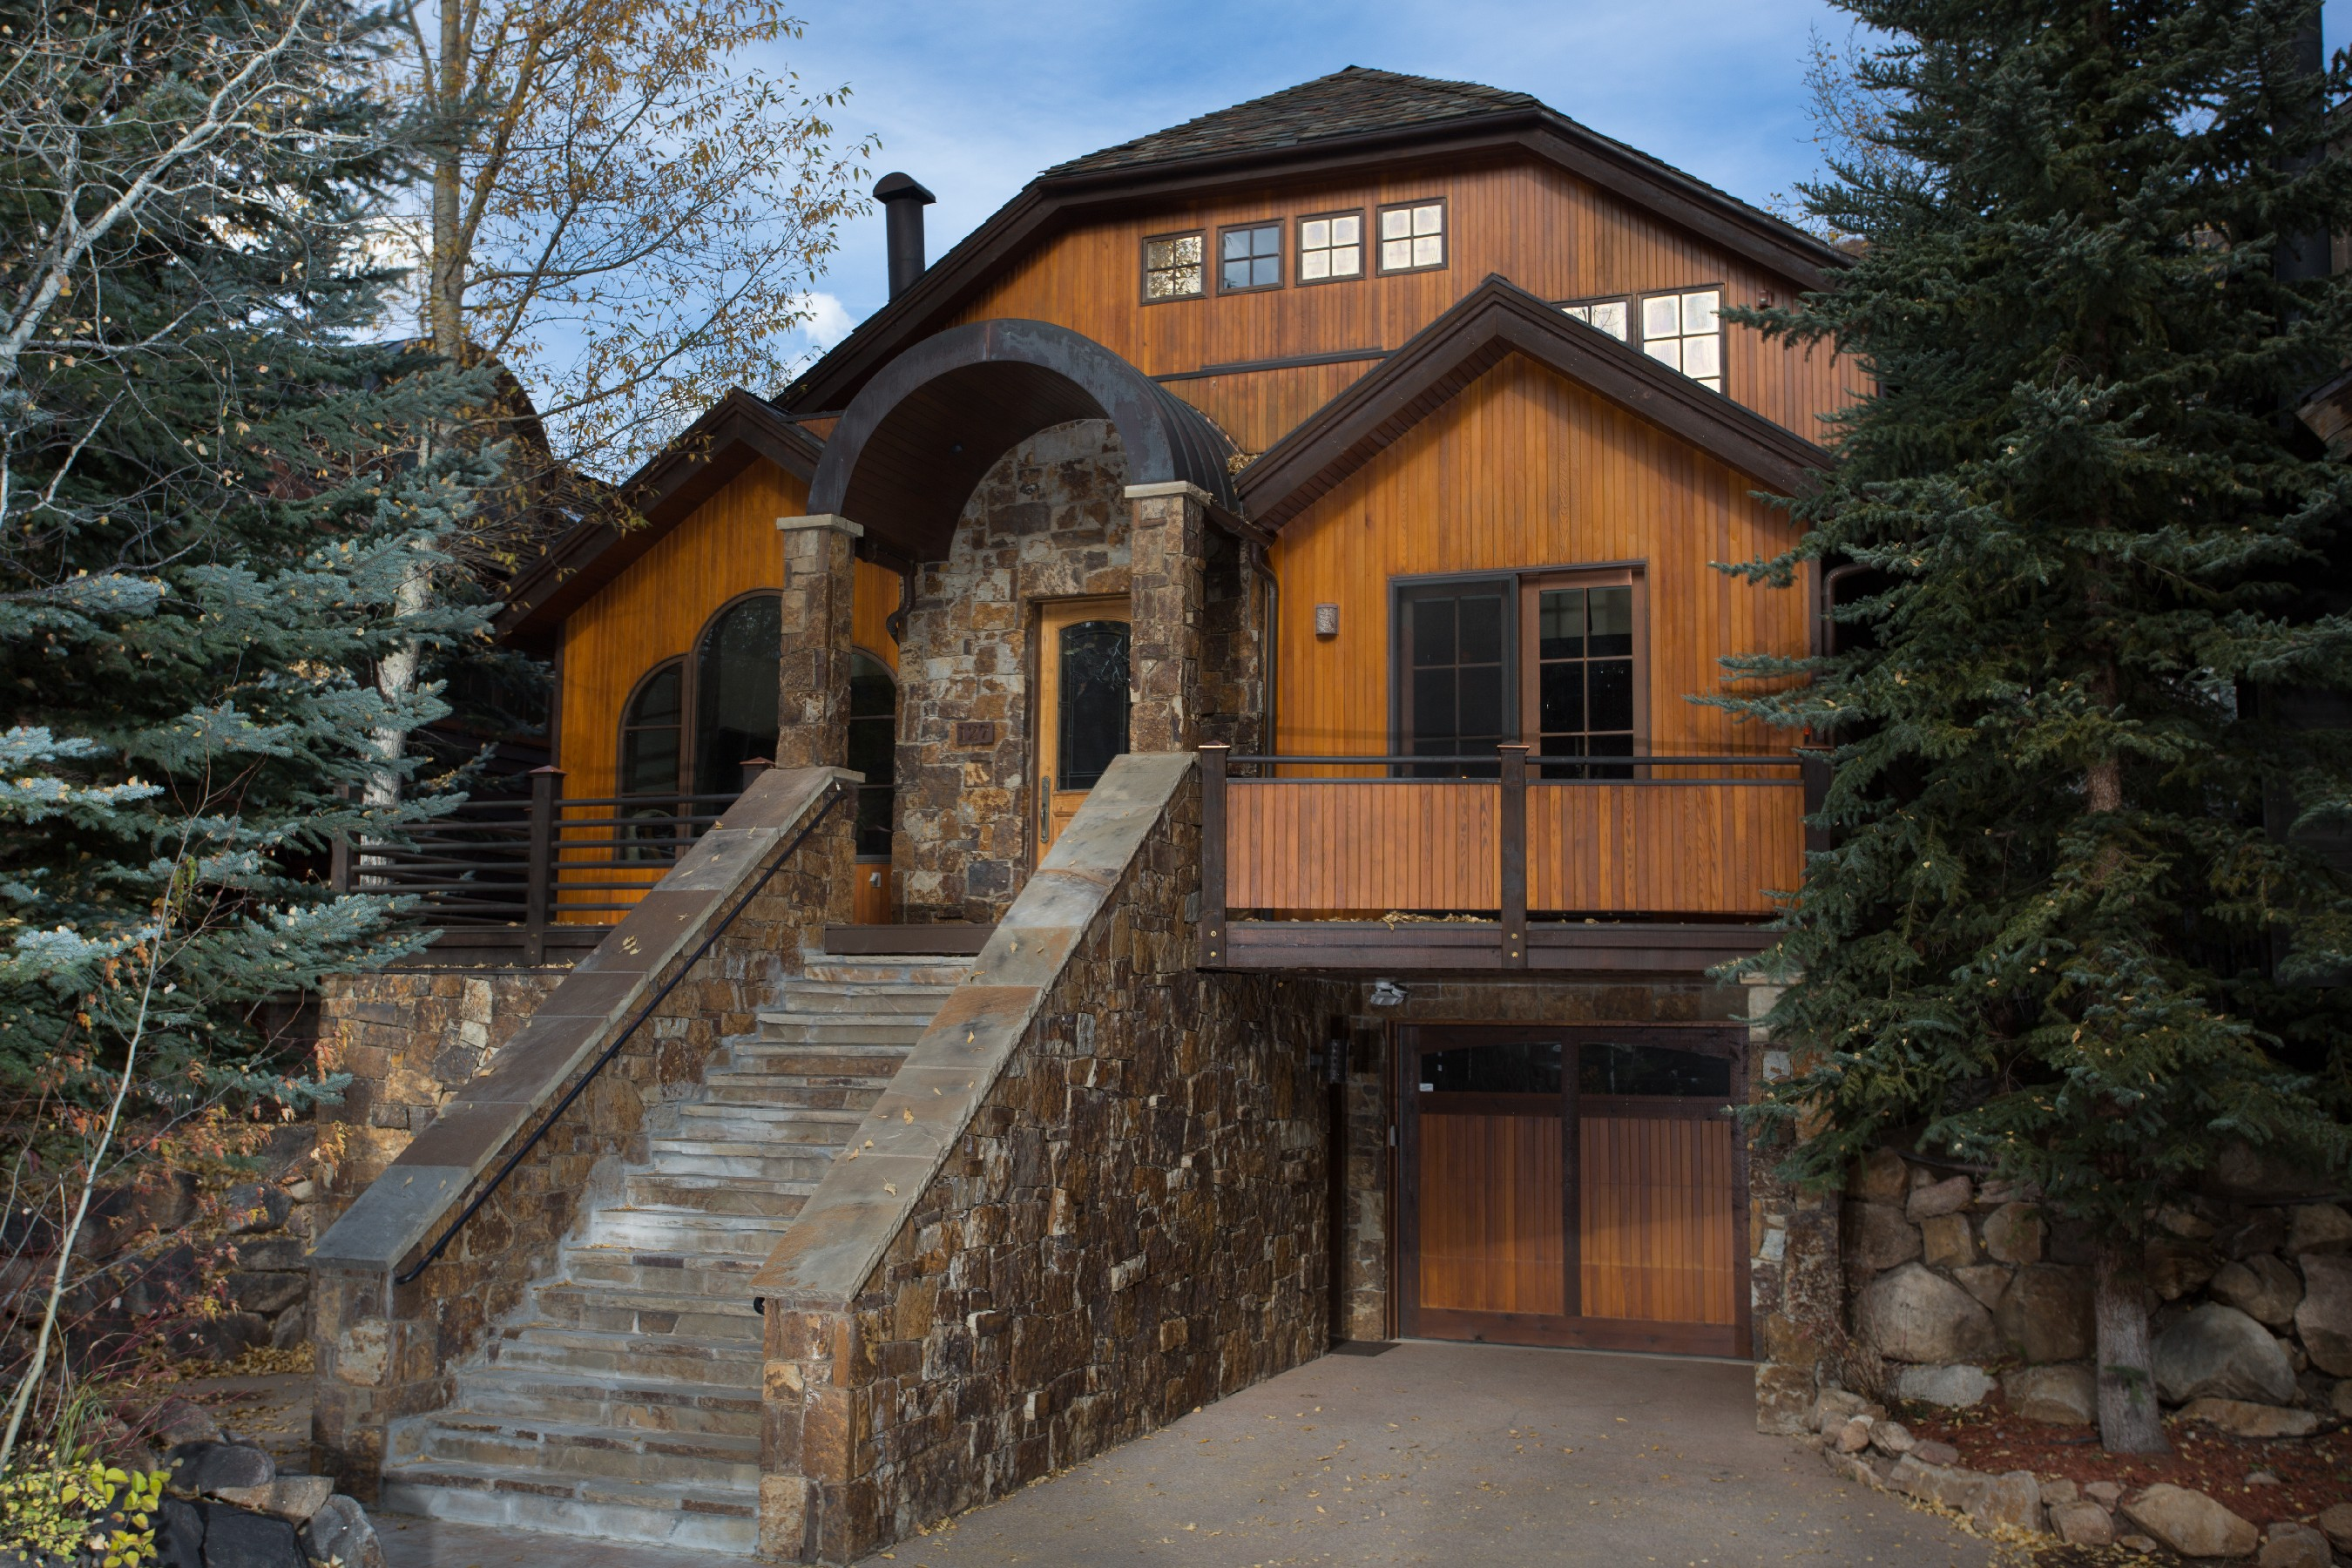 Single Family Home for Sale at Alpine Cottages 127 Robinson Road Aspen, Colorado, 81611 United States